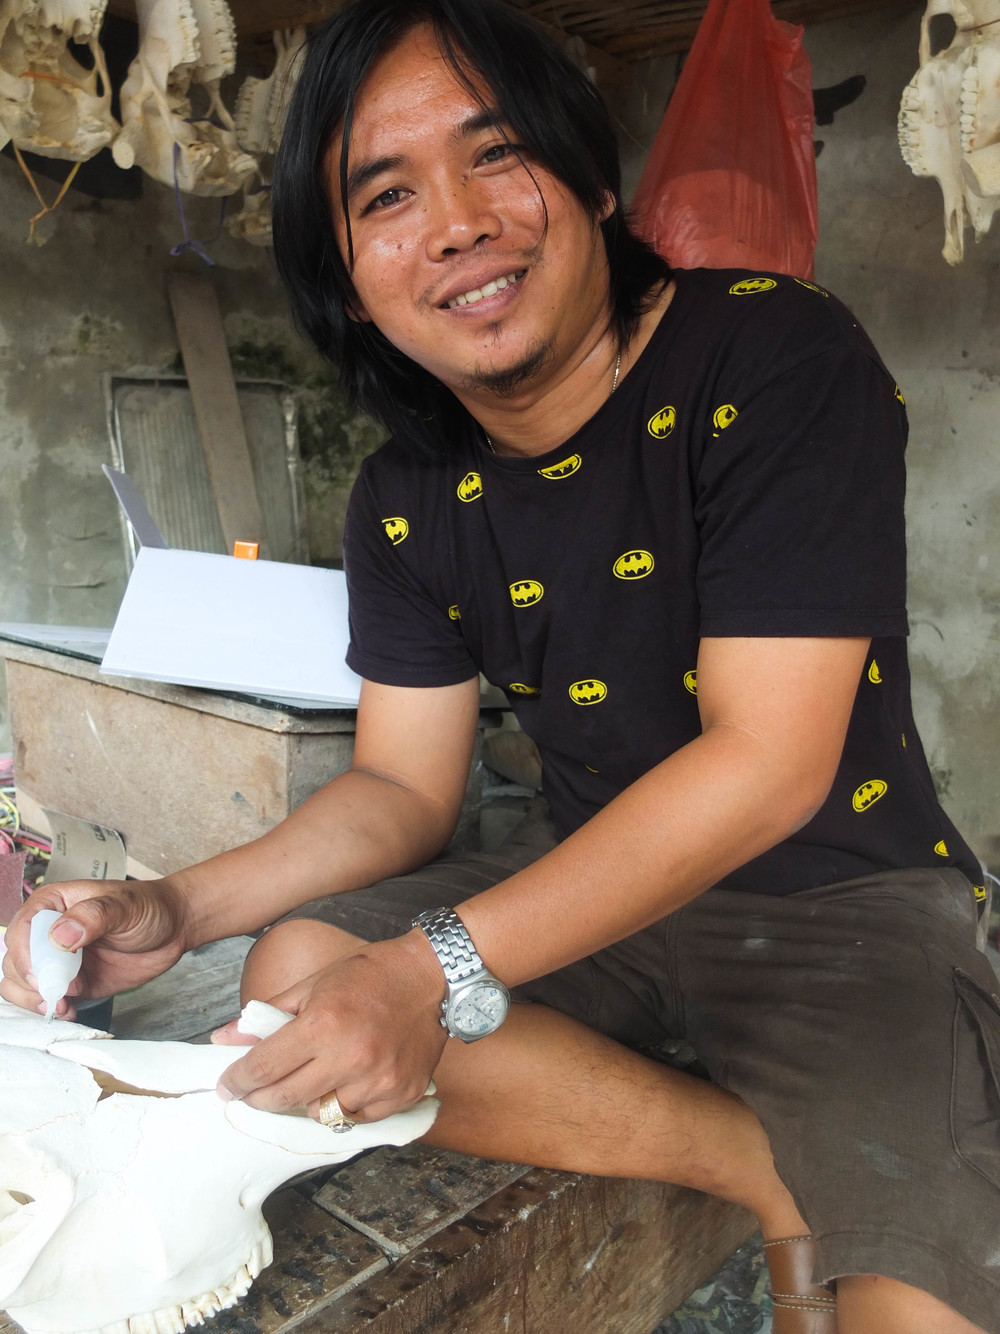 Indra Suryaningrat - Our Amazing Head Craftsman and Team Leader